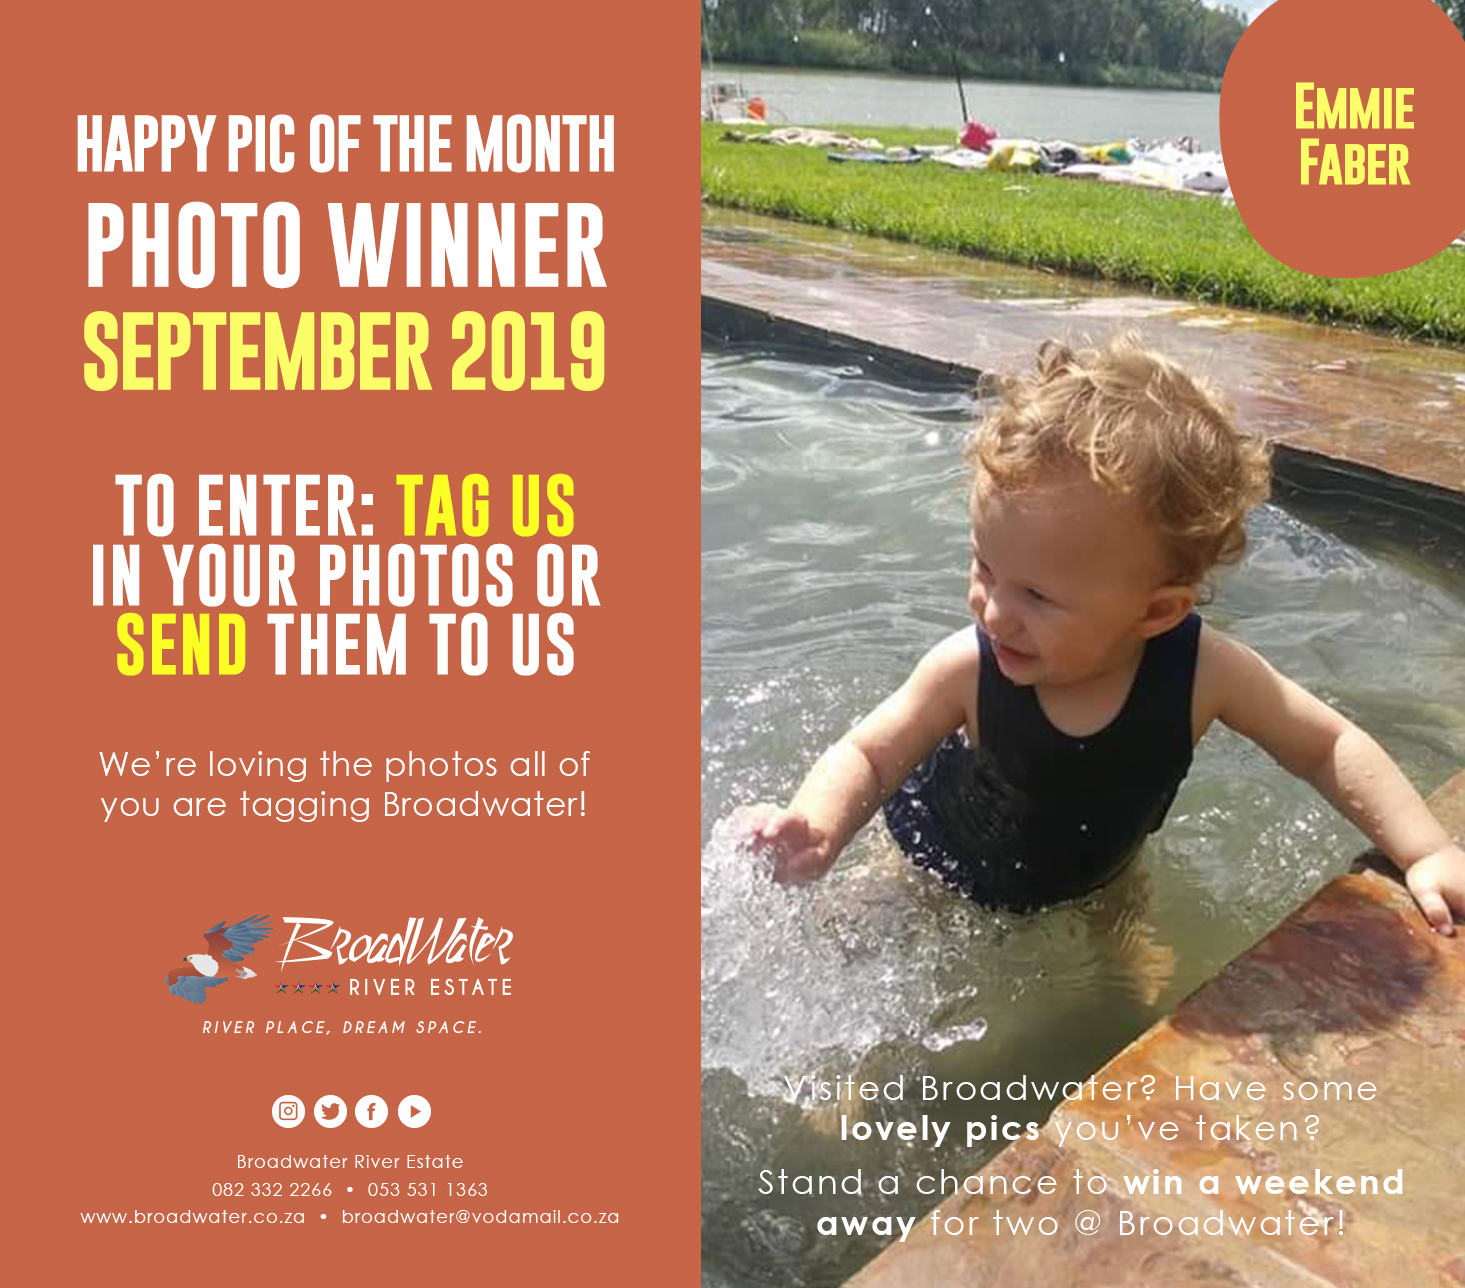 happy photo contest for september